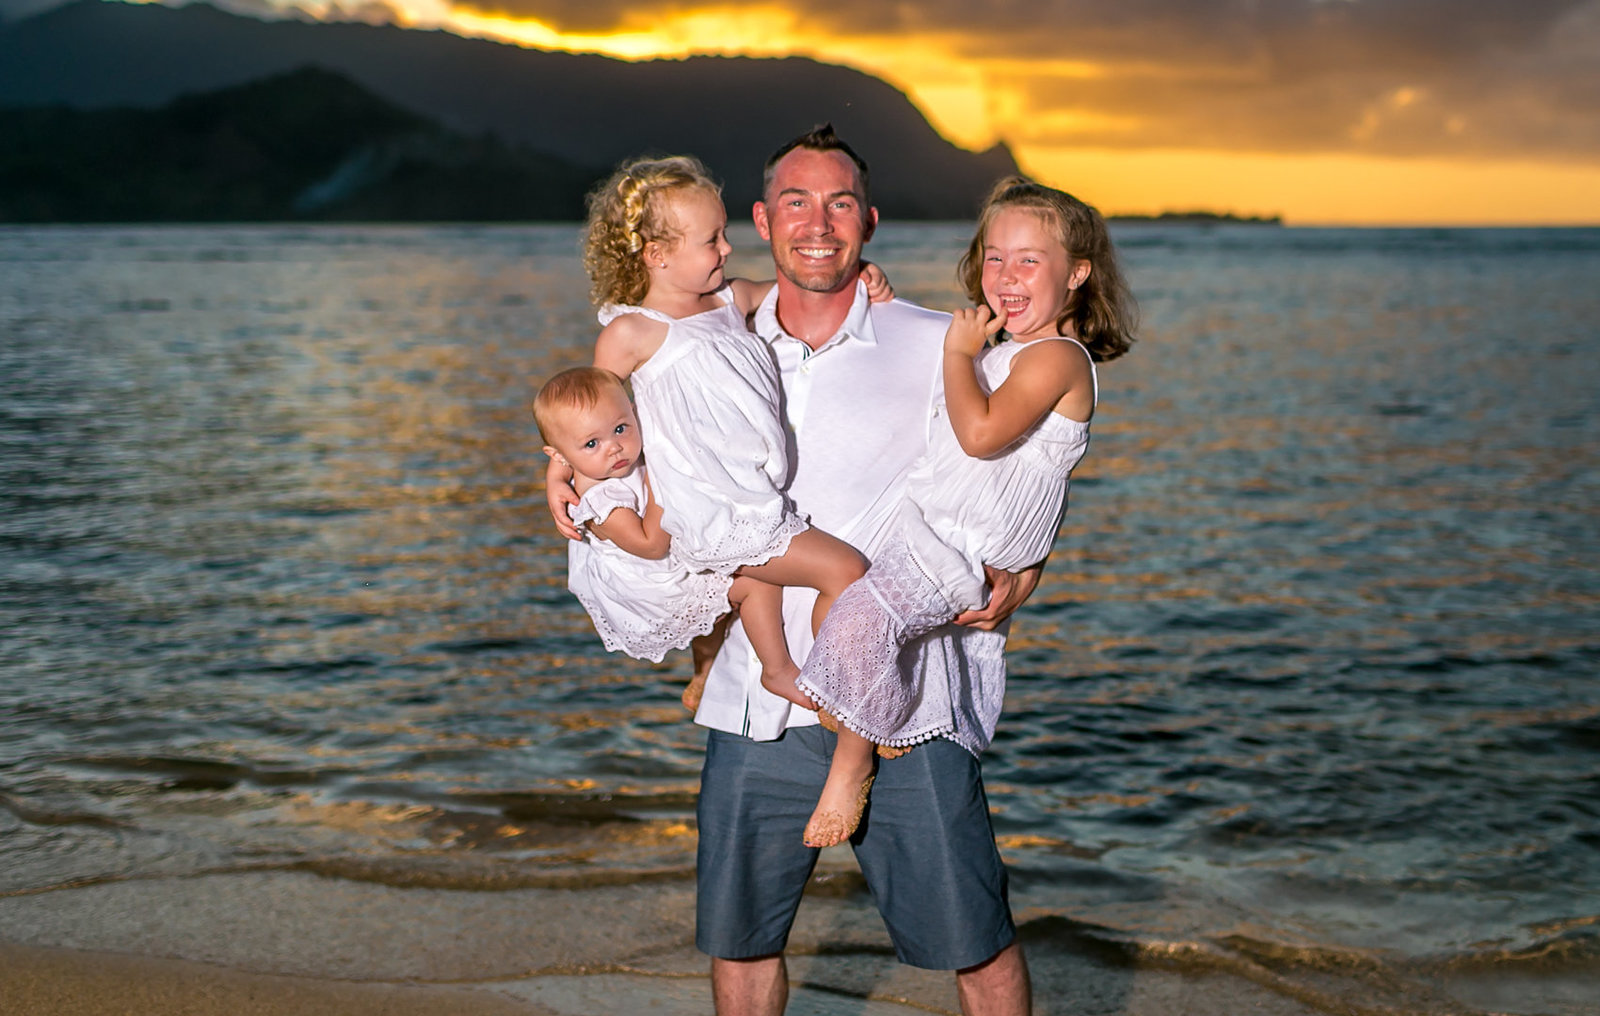 Hawaii family portrait photography